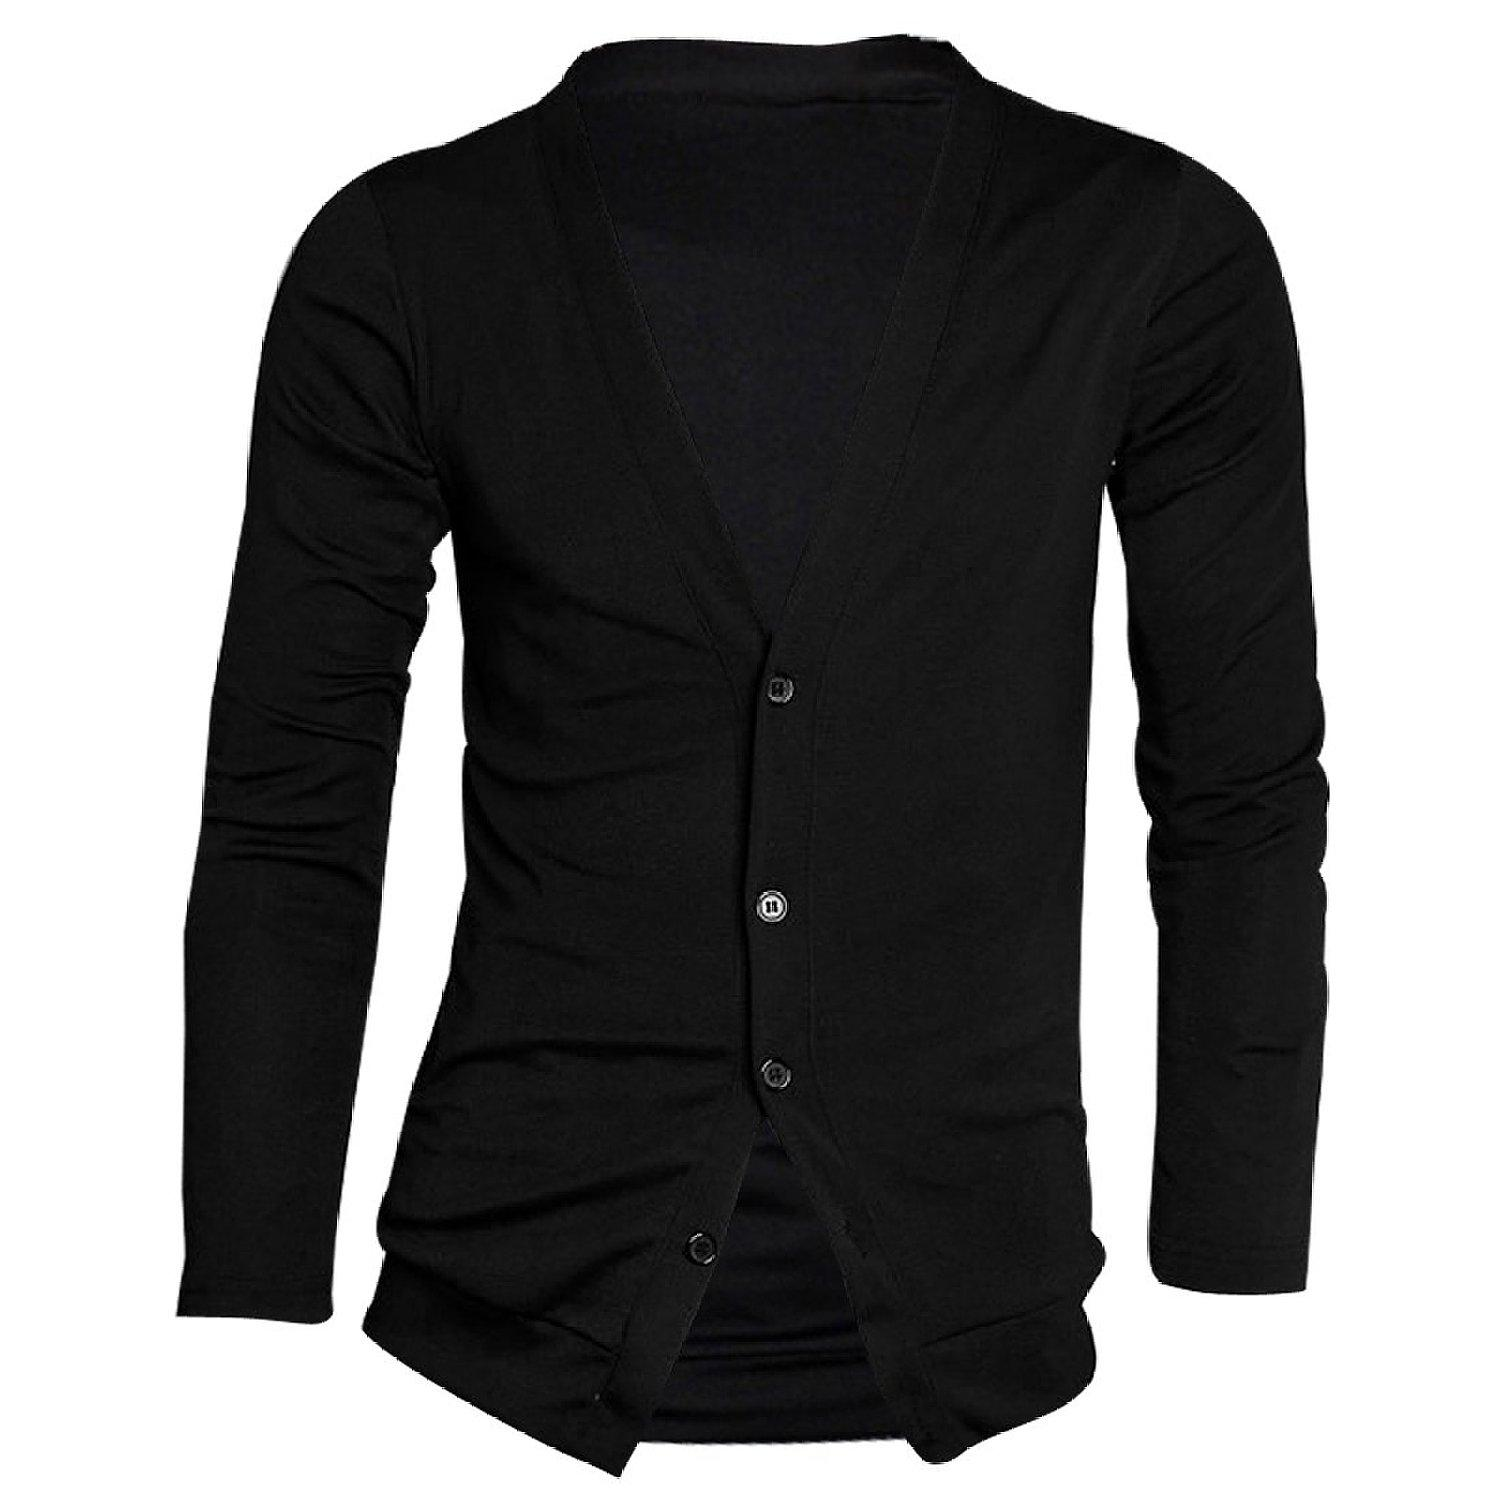 bd35f97f 2019 Wholesale Men Deep V Neck Long Sleeve Casual Slim Button Down  Cardigans Shirts From Maluokui, $26.32 | DHgate.Com